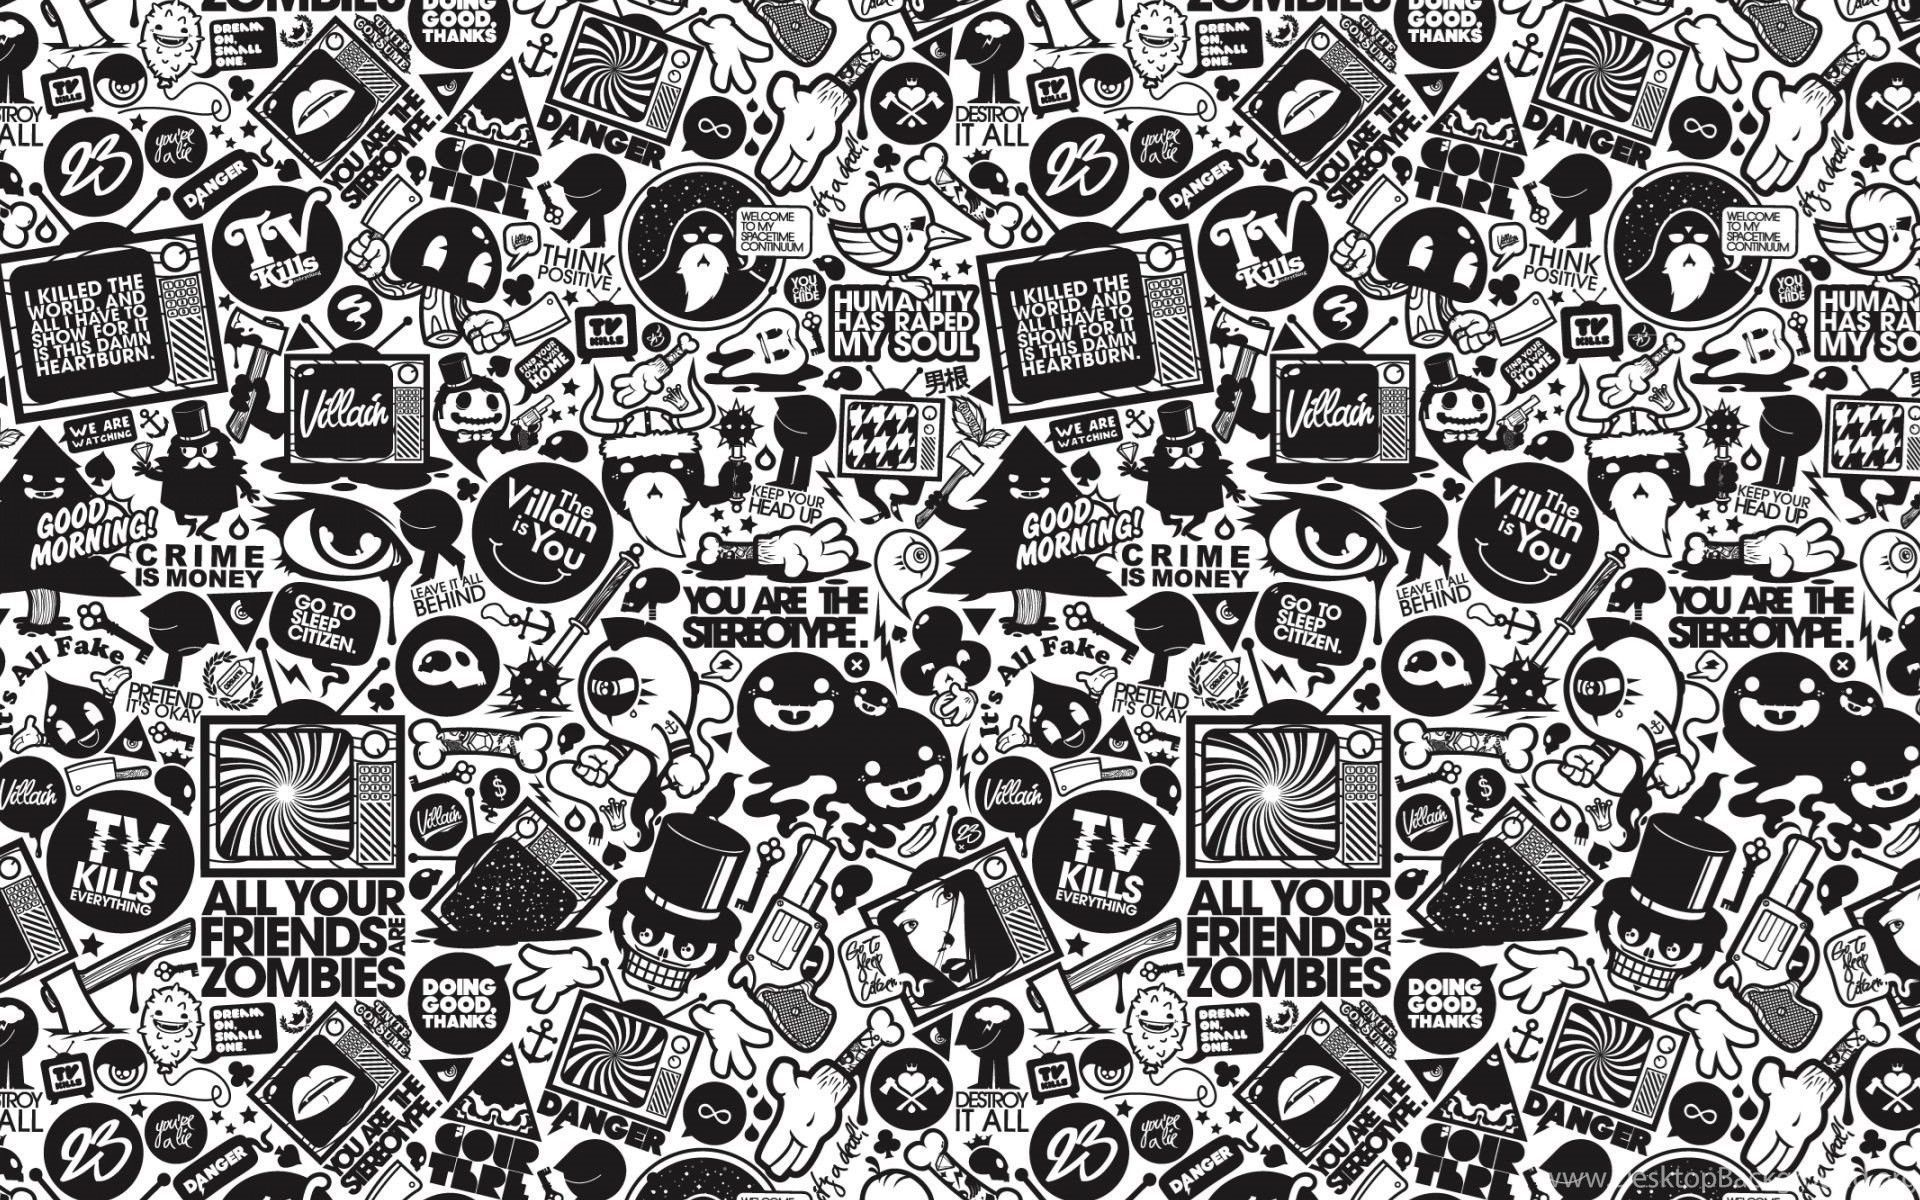 Keith Haring Wallpapers 52 Images Ipad Air Wallpaper Pop Art Wallpaper